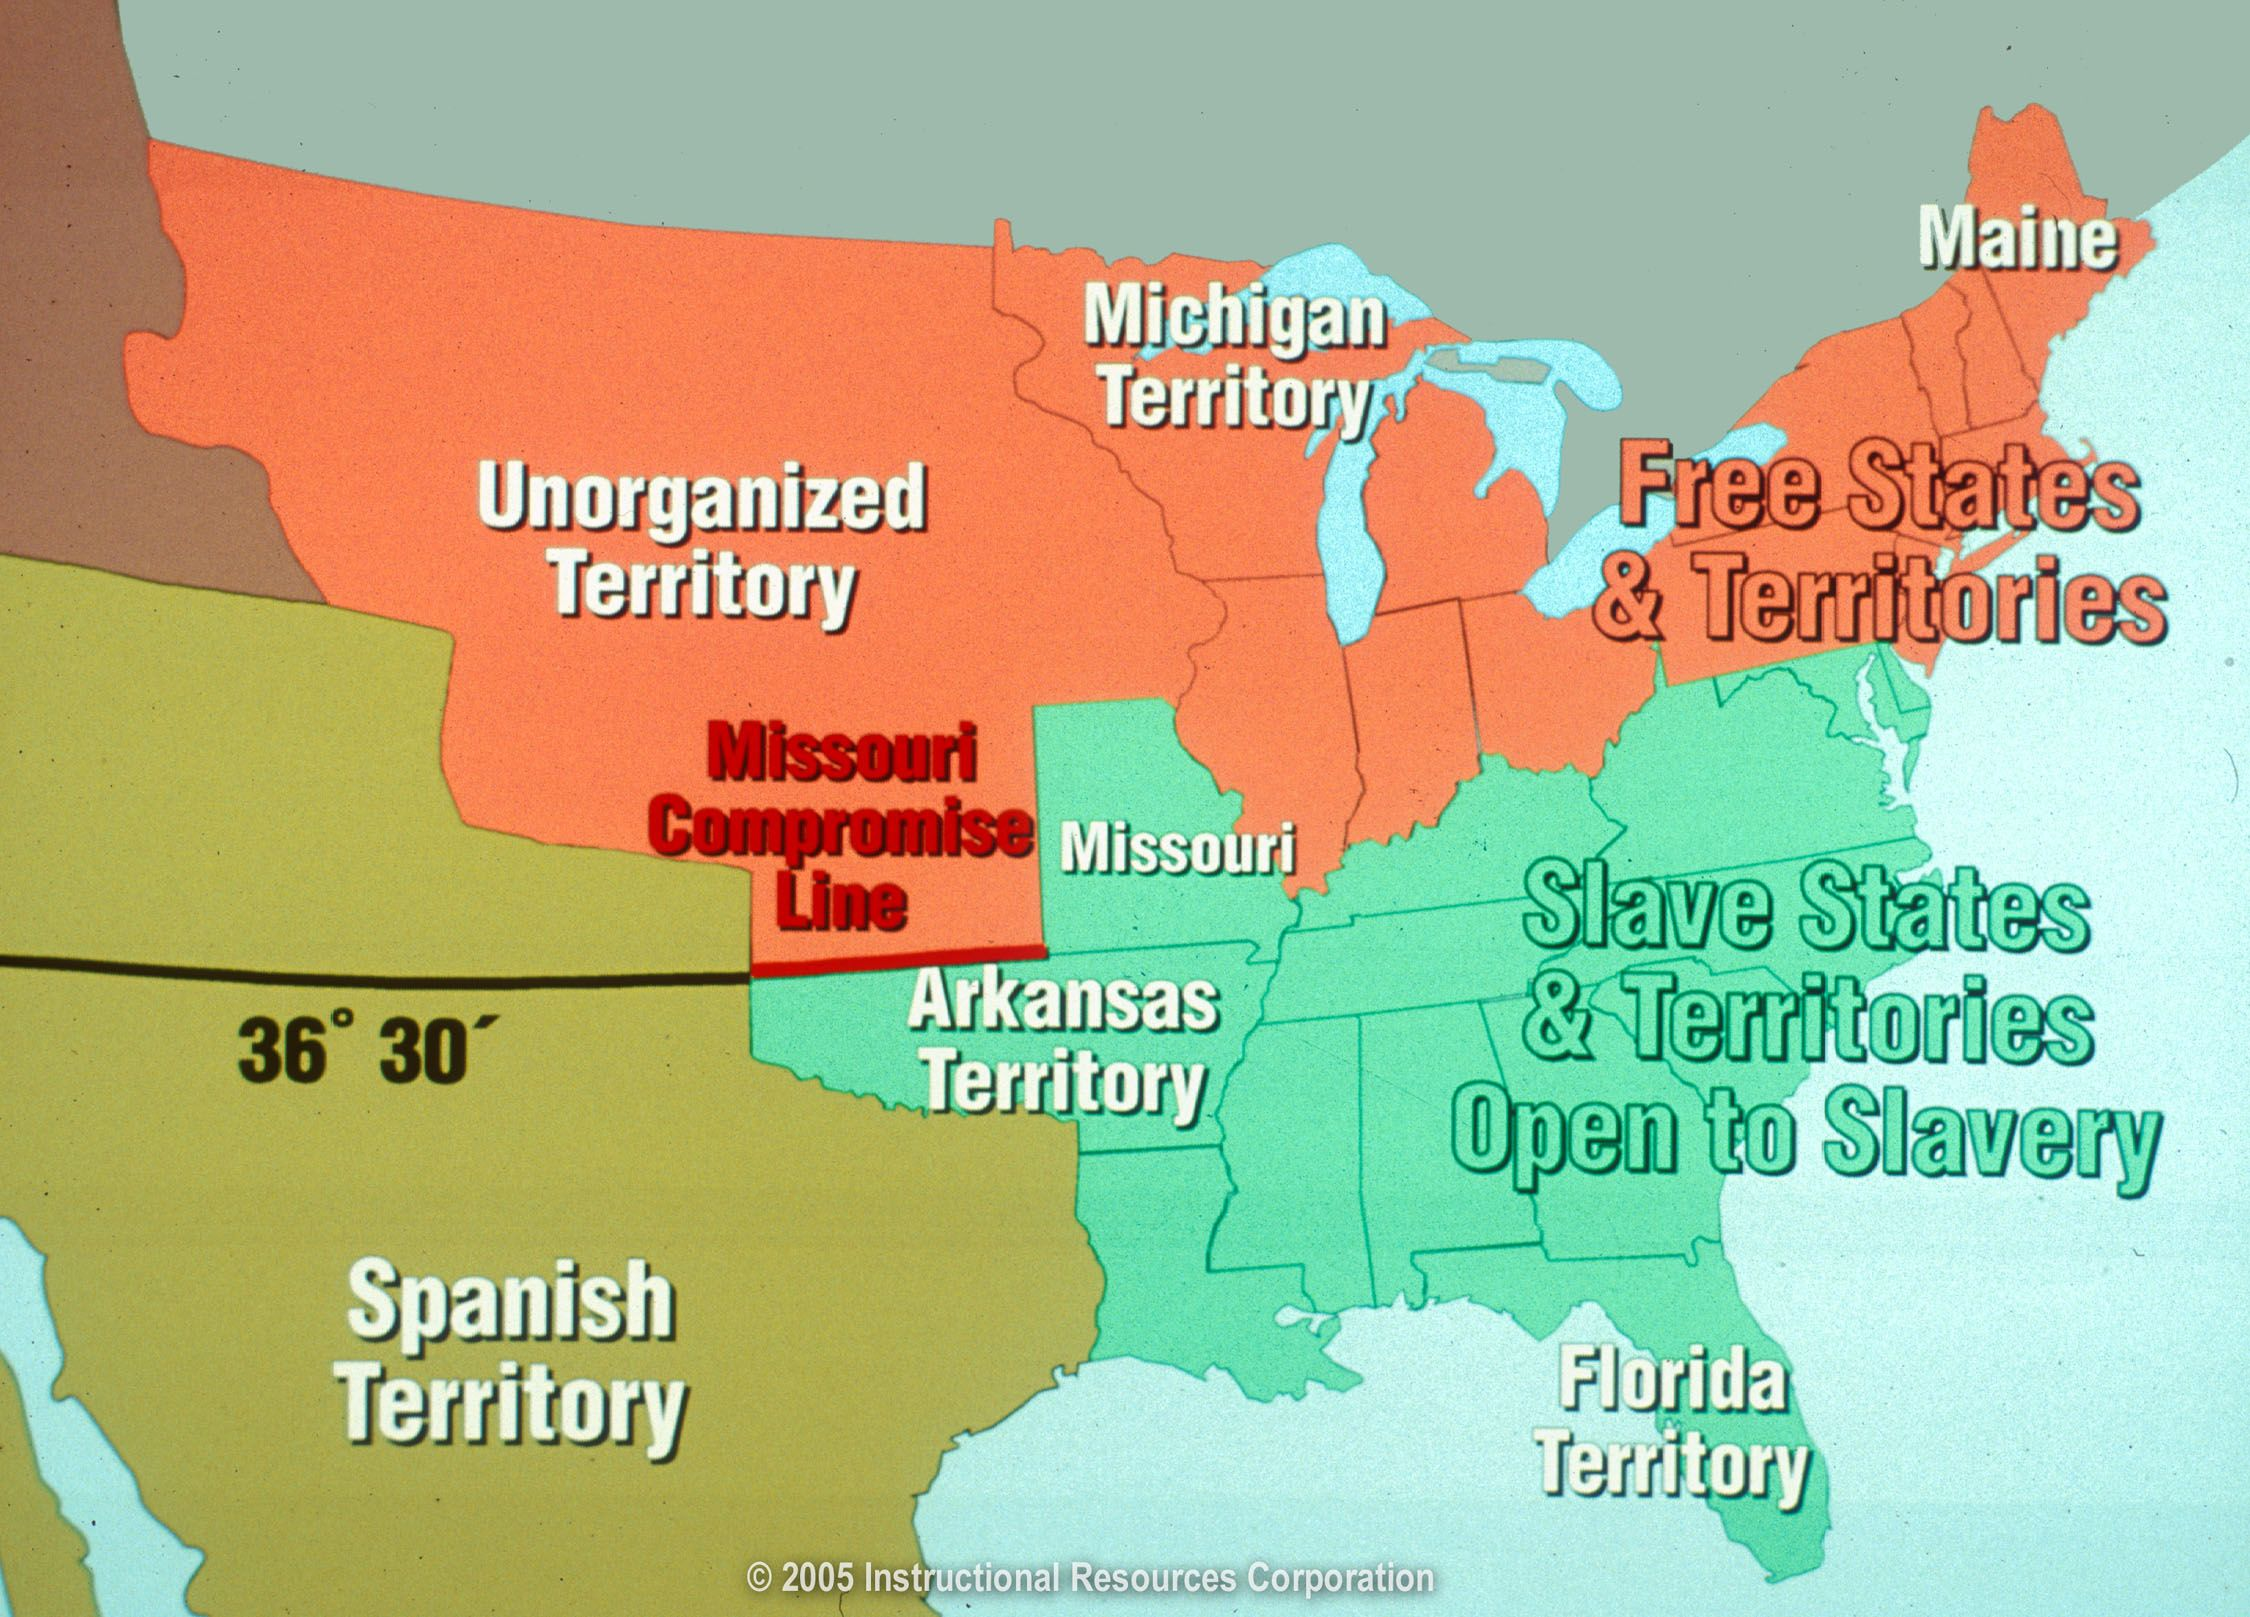 In There Were 11 Free States And 11 Slave States